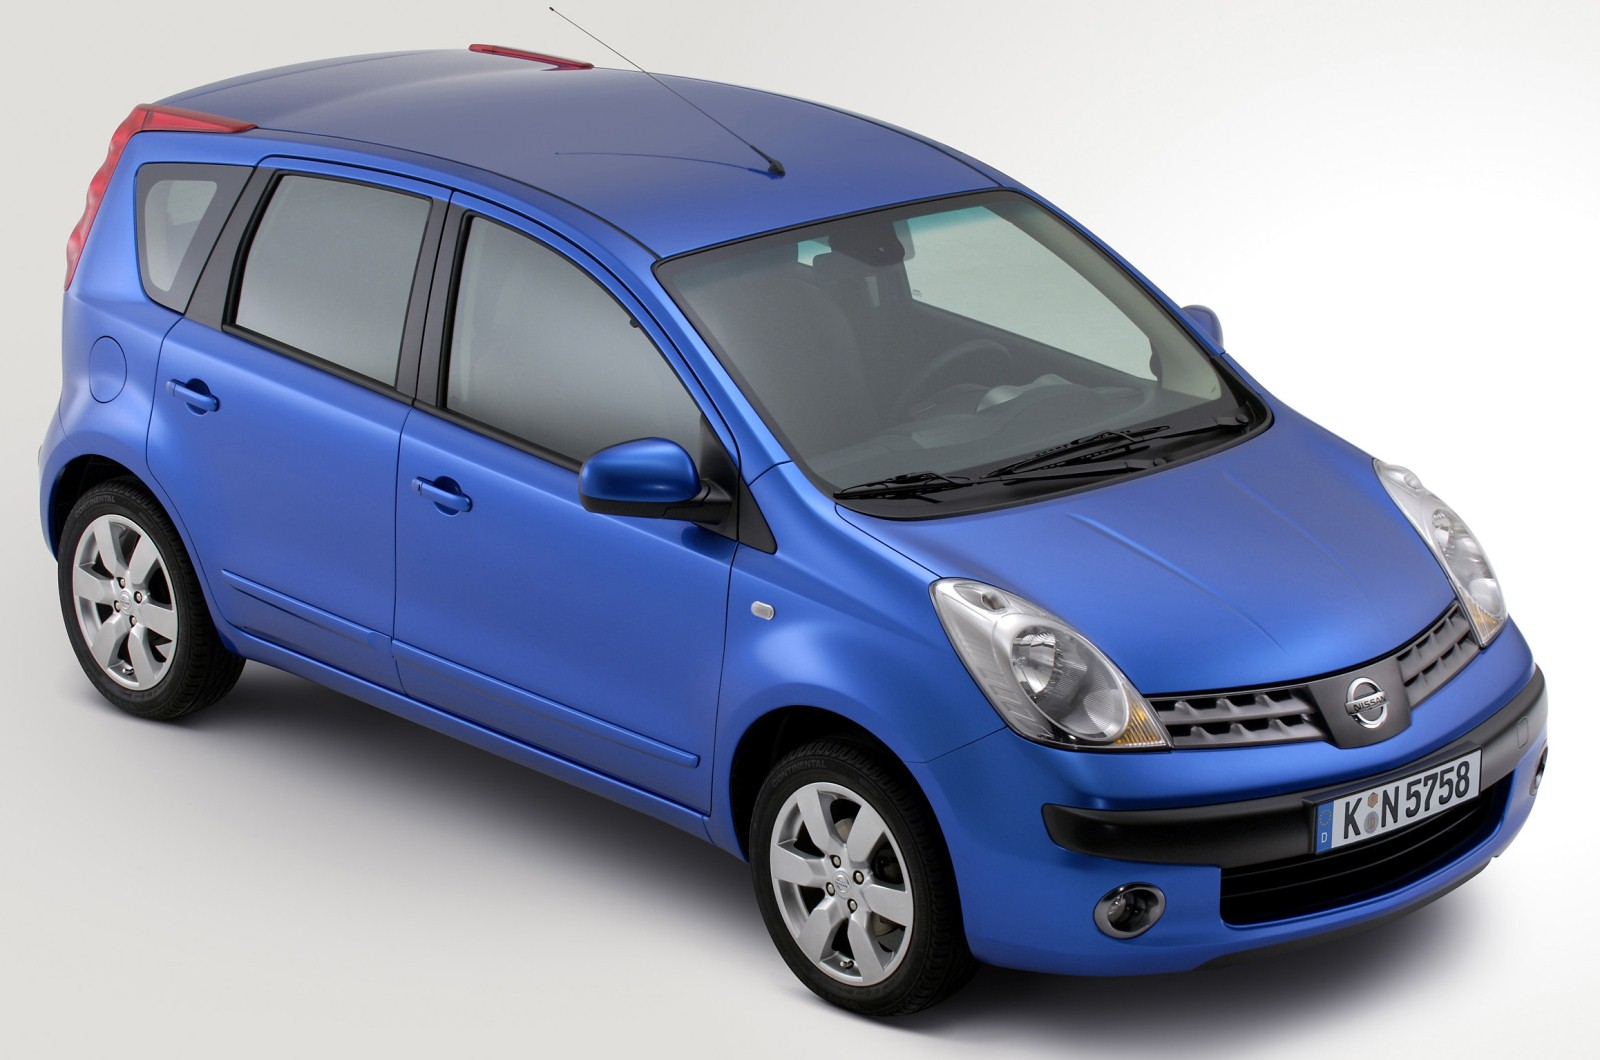 2007 Nissan Note #23